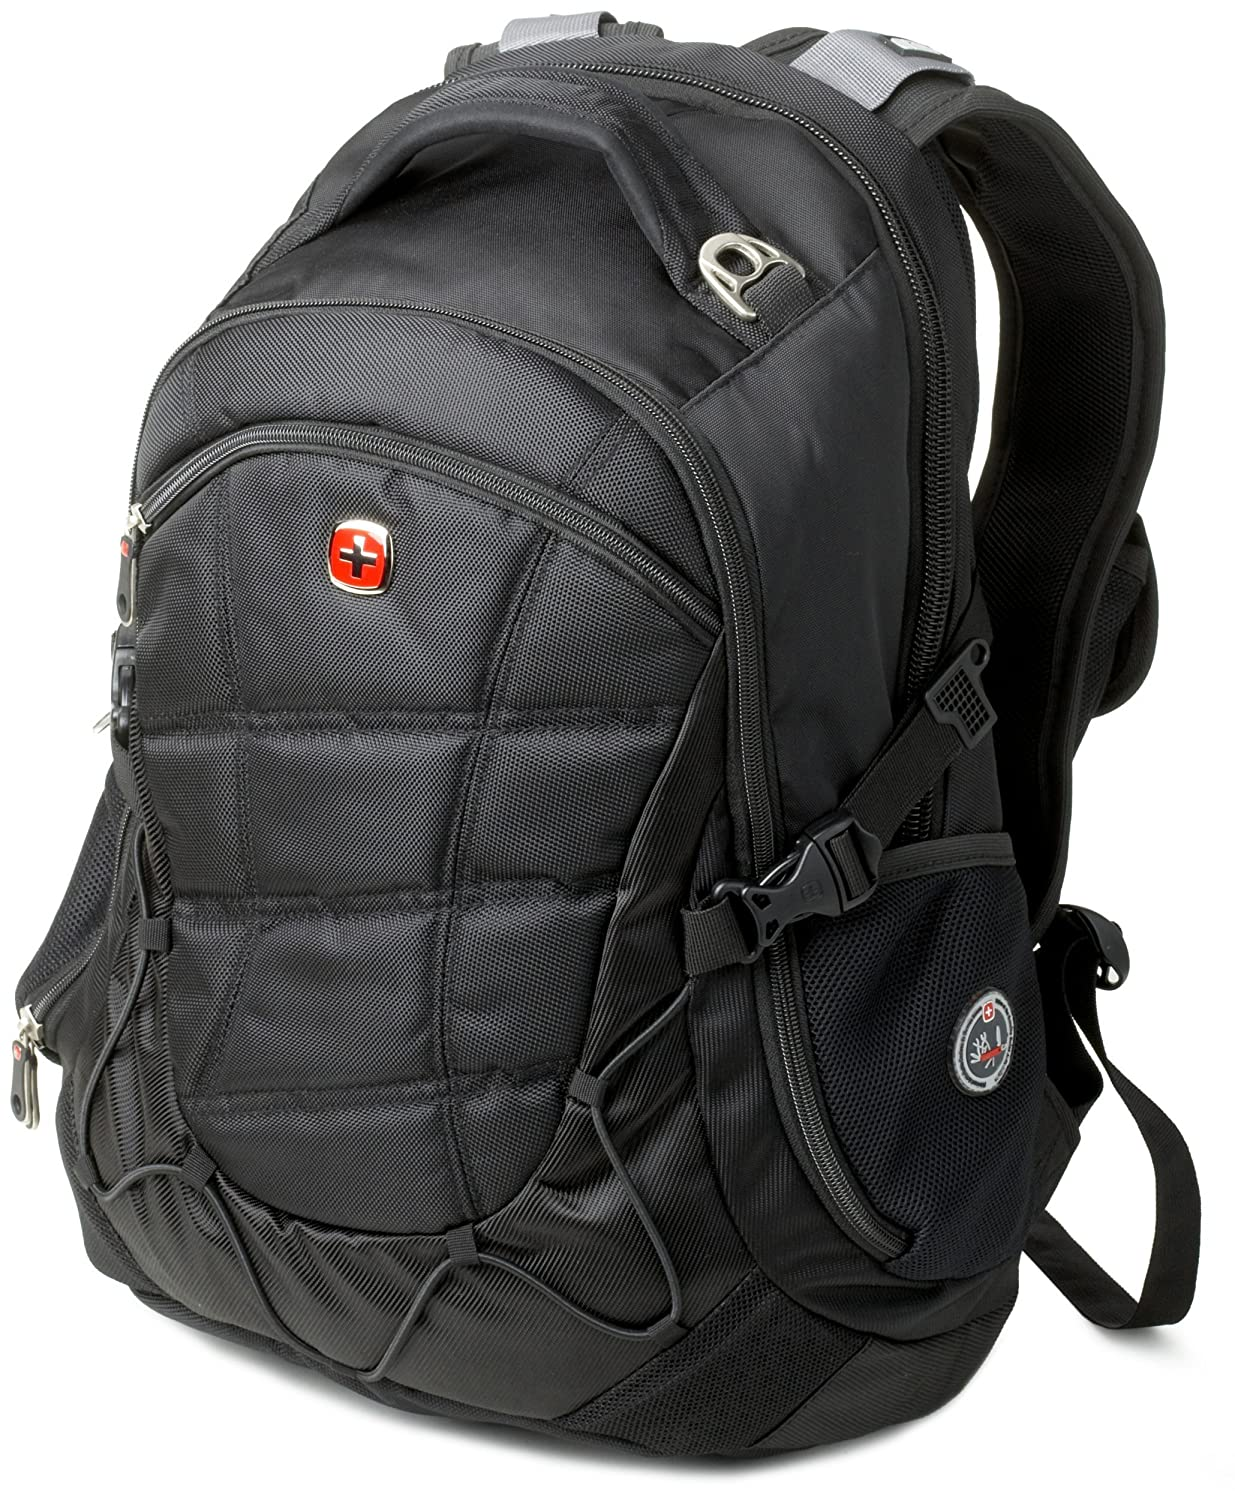 Amazon.com: SwissGear SA9769 Black Laptop Backpack - Fits Most 15 ...